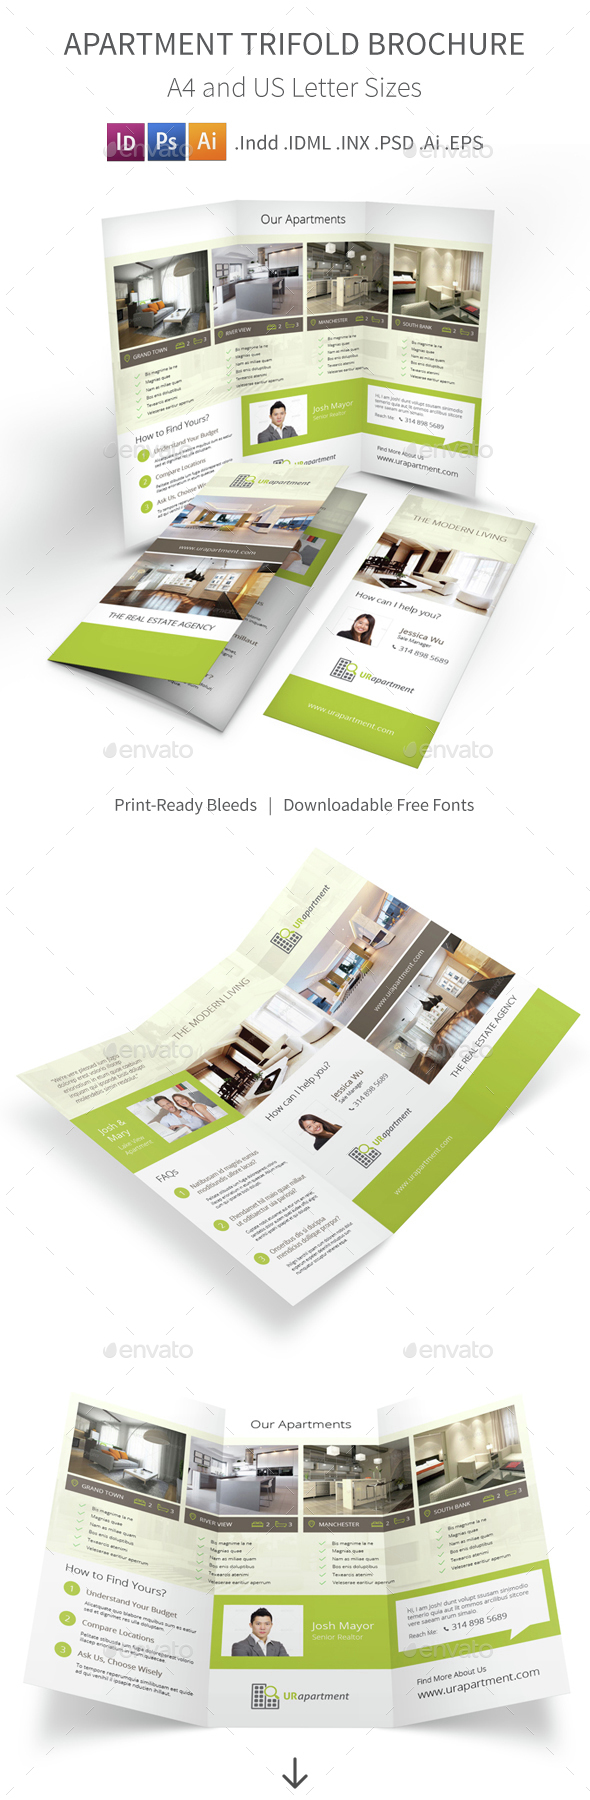 apartment brochure templates - apartment for rent trifold brochure by mike pantone